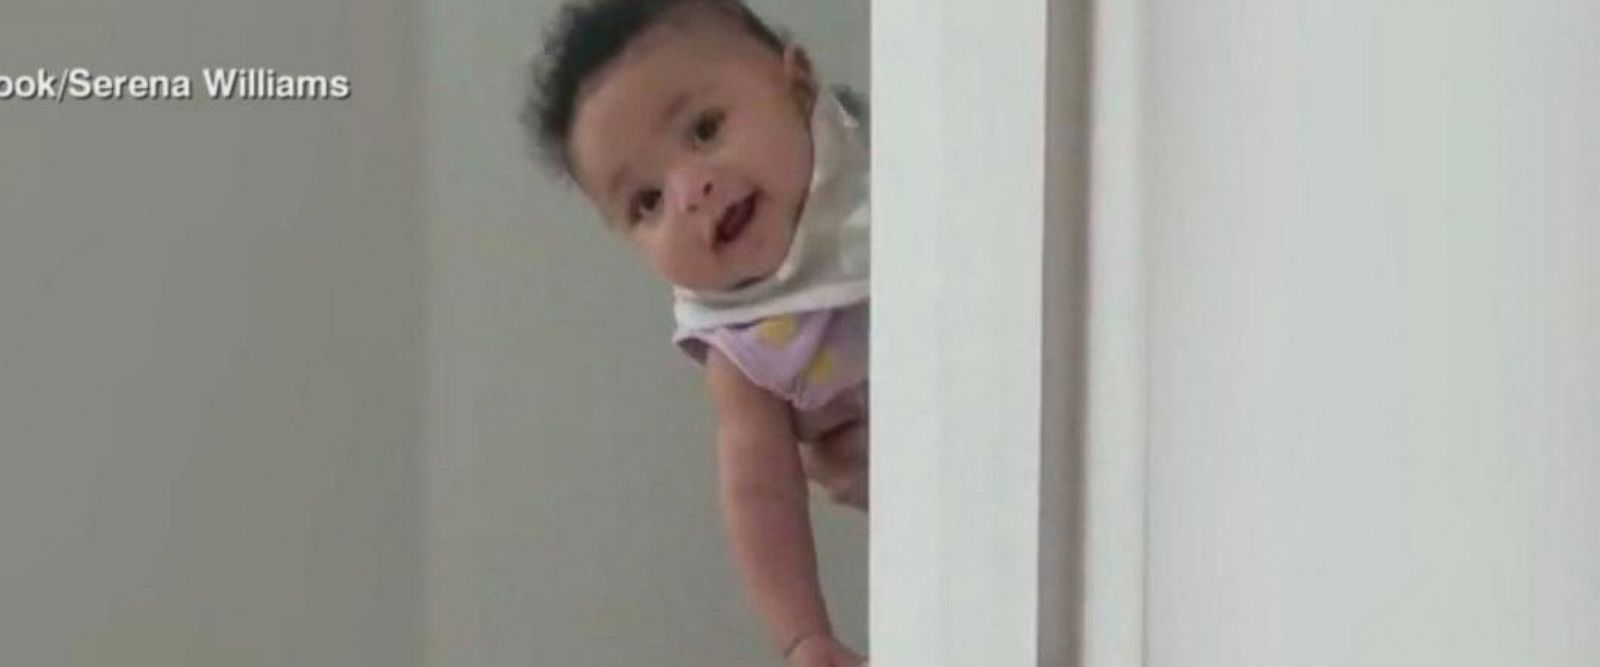 VIDEO: 'GMA' Hot List: Serena Williams shares adorable new video of her daughter